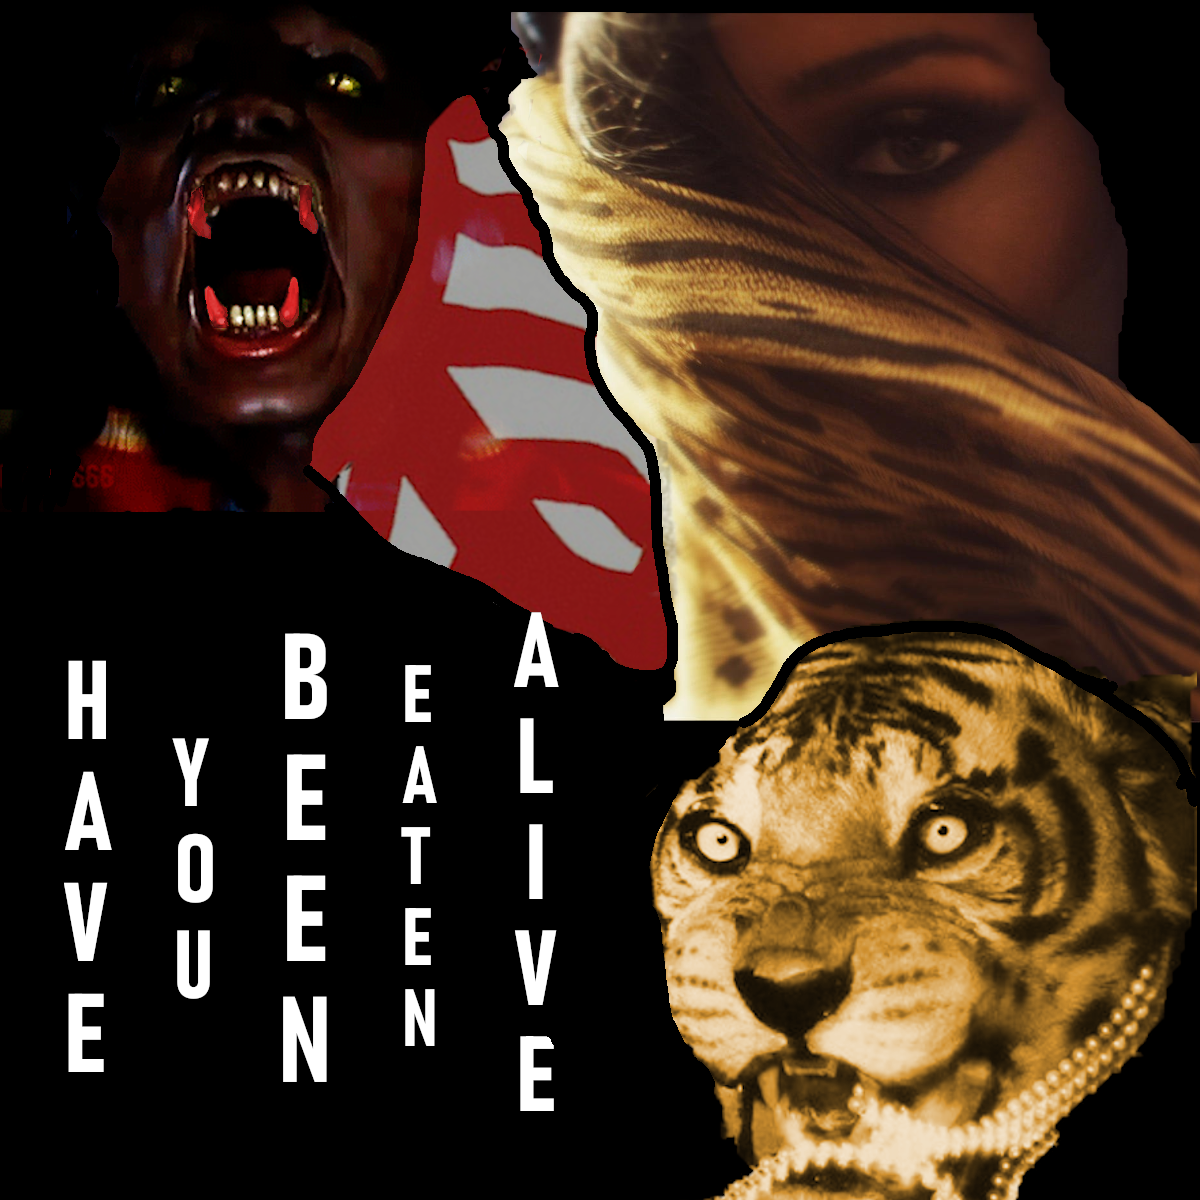 Have You Been Eaten Alive - Diana Ross & Michael Jackson vs. Rihanna